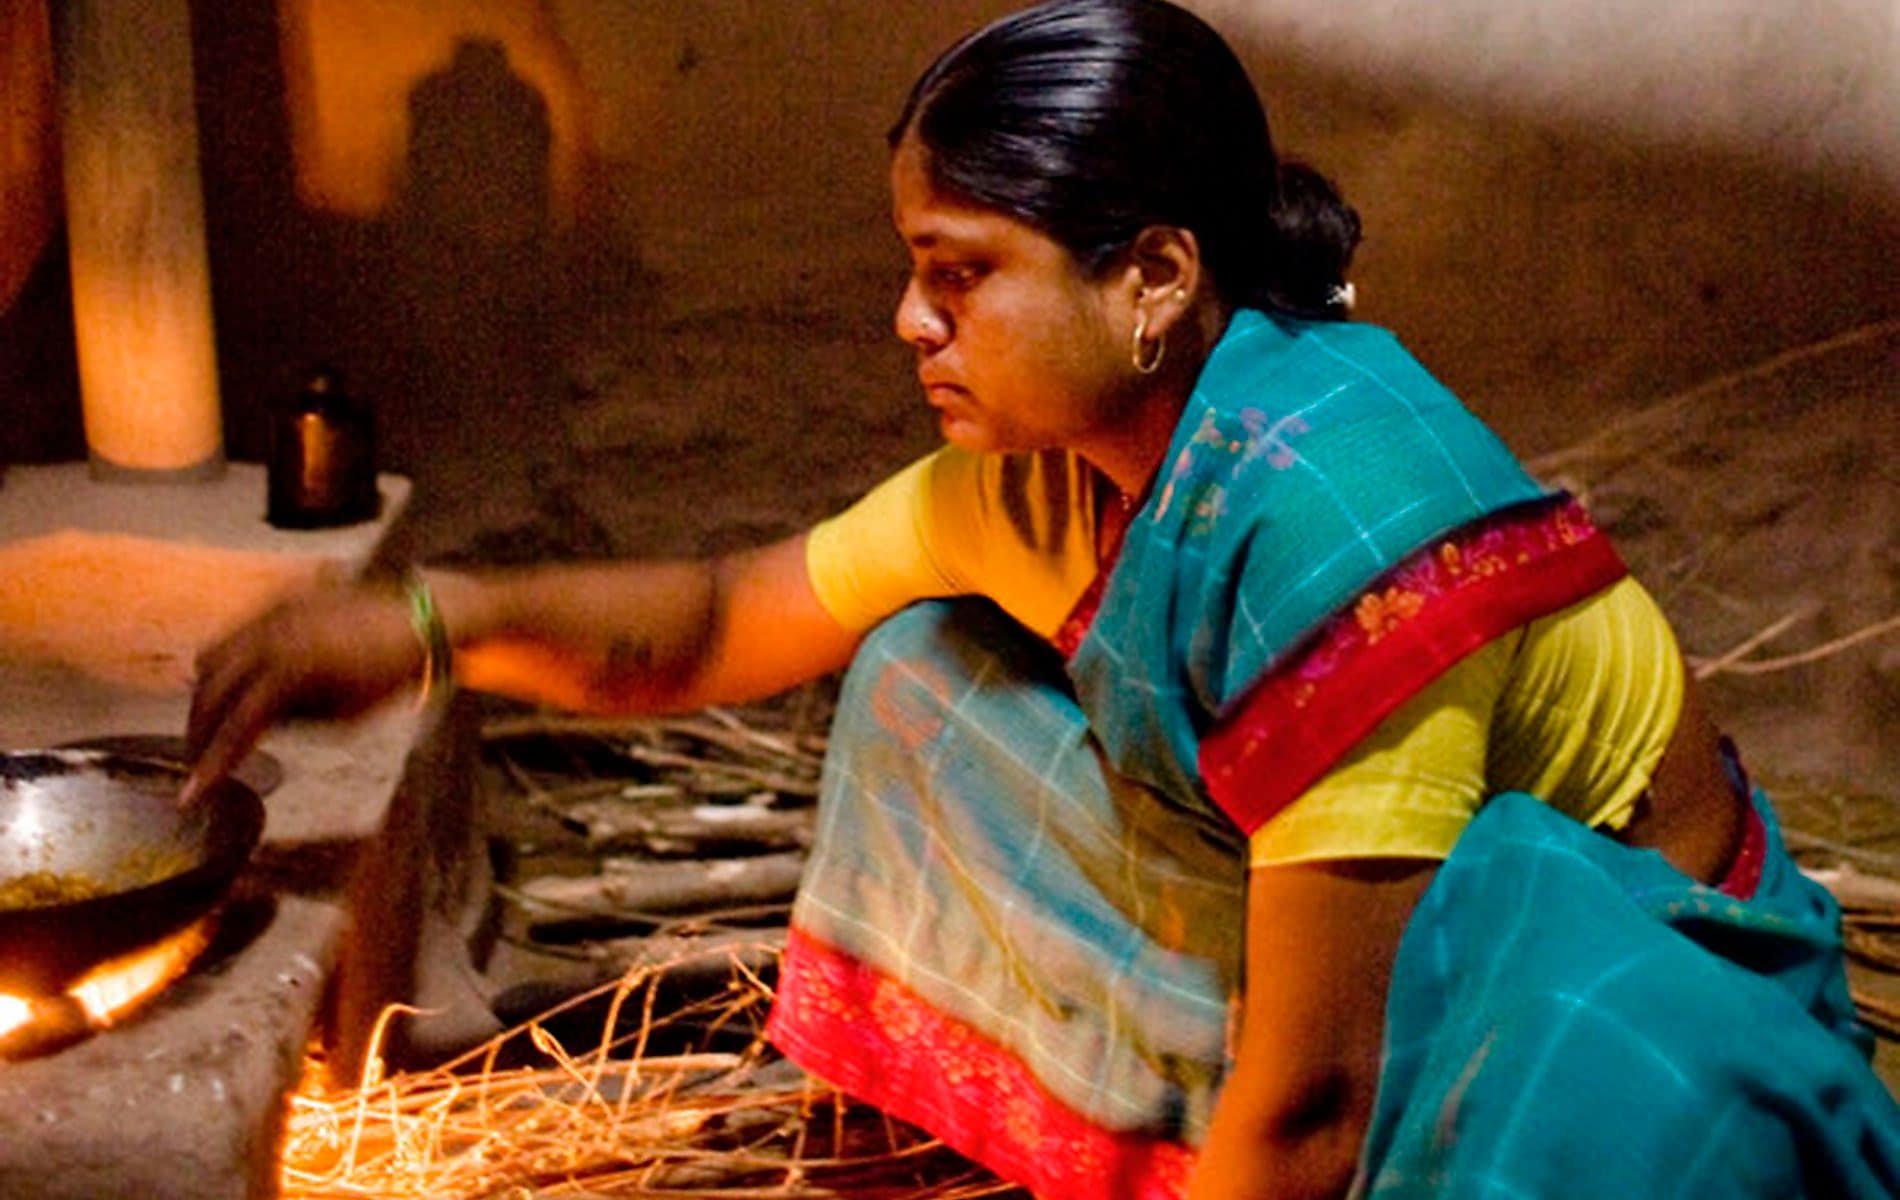 A woman cooks using traditional 'chulha'